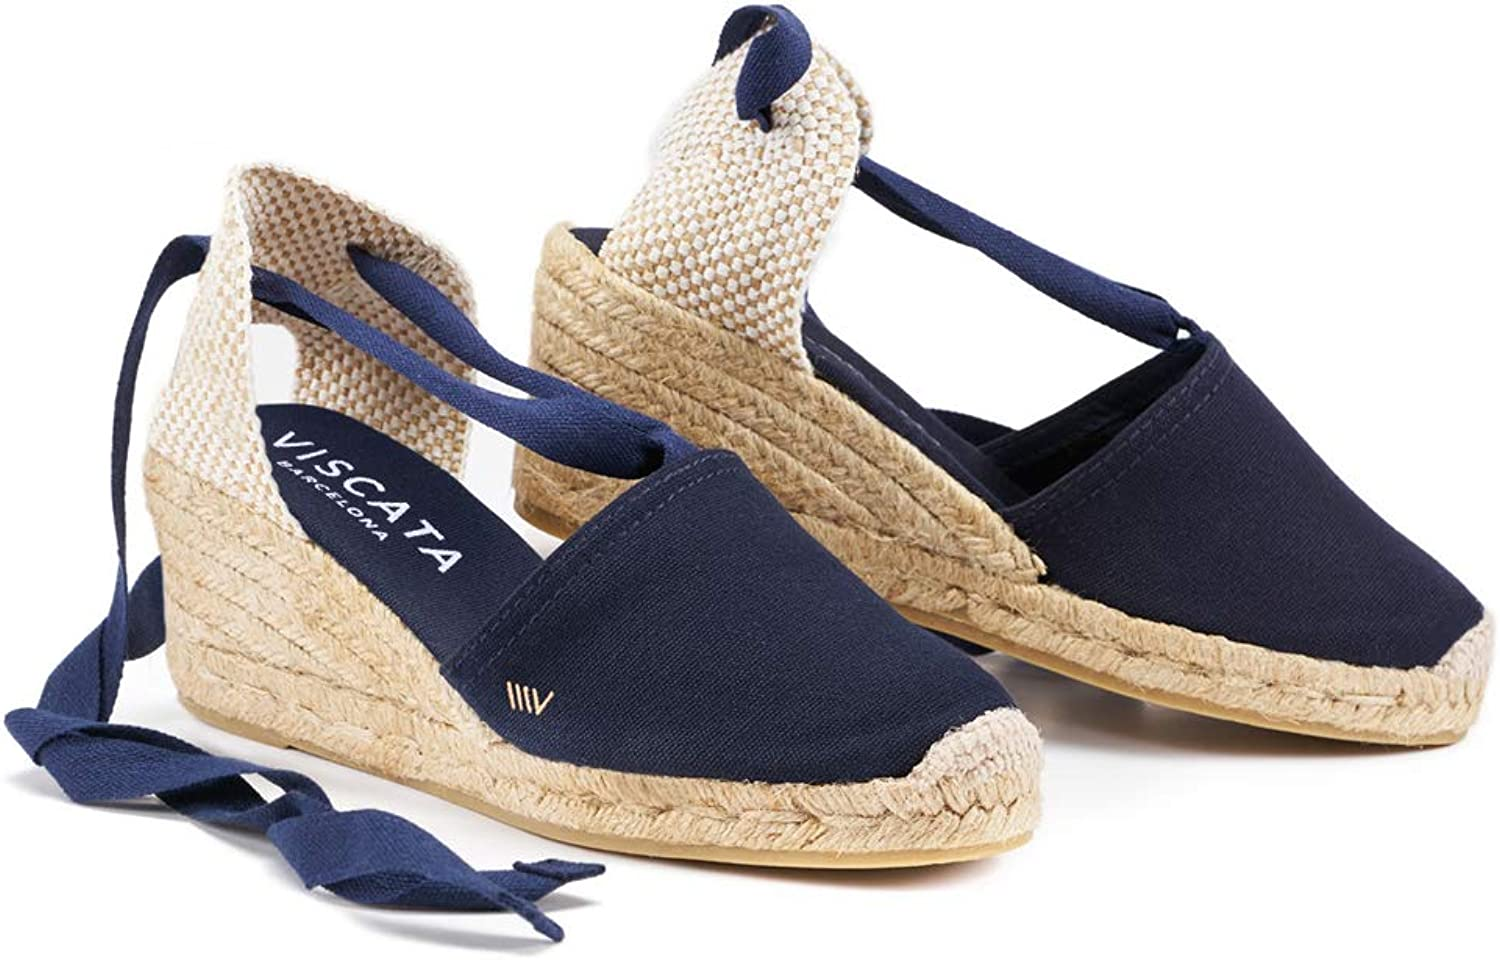 VISCATA Handmade in Spain. Escala 2.5  Wedge, Soft Ankle-Tie, Closed Toe, Classic Espadrilles Heel